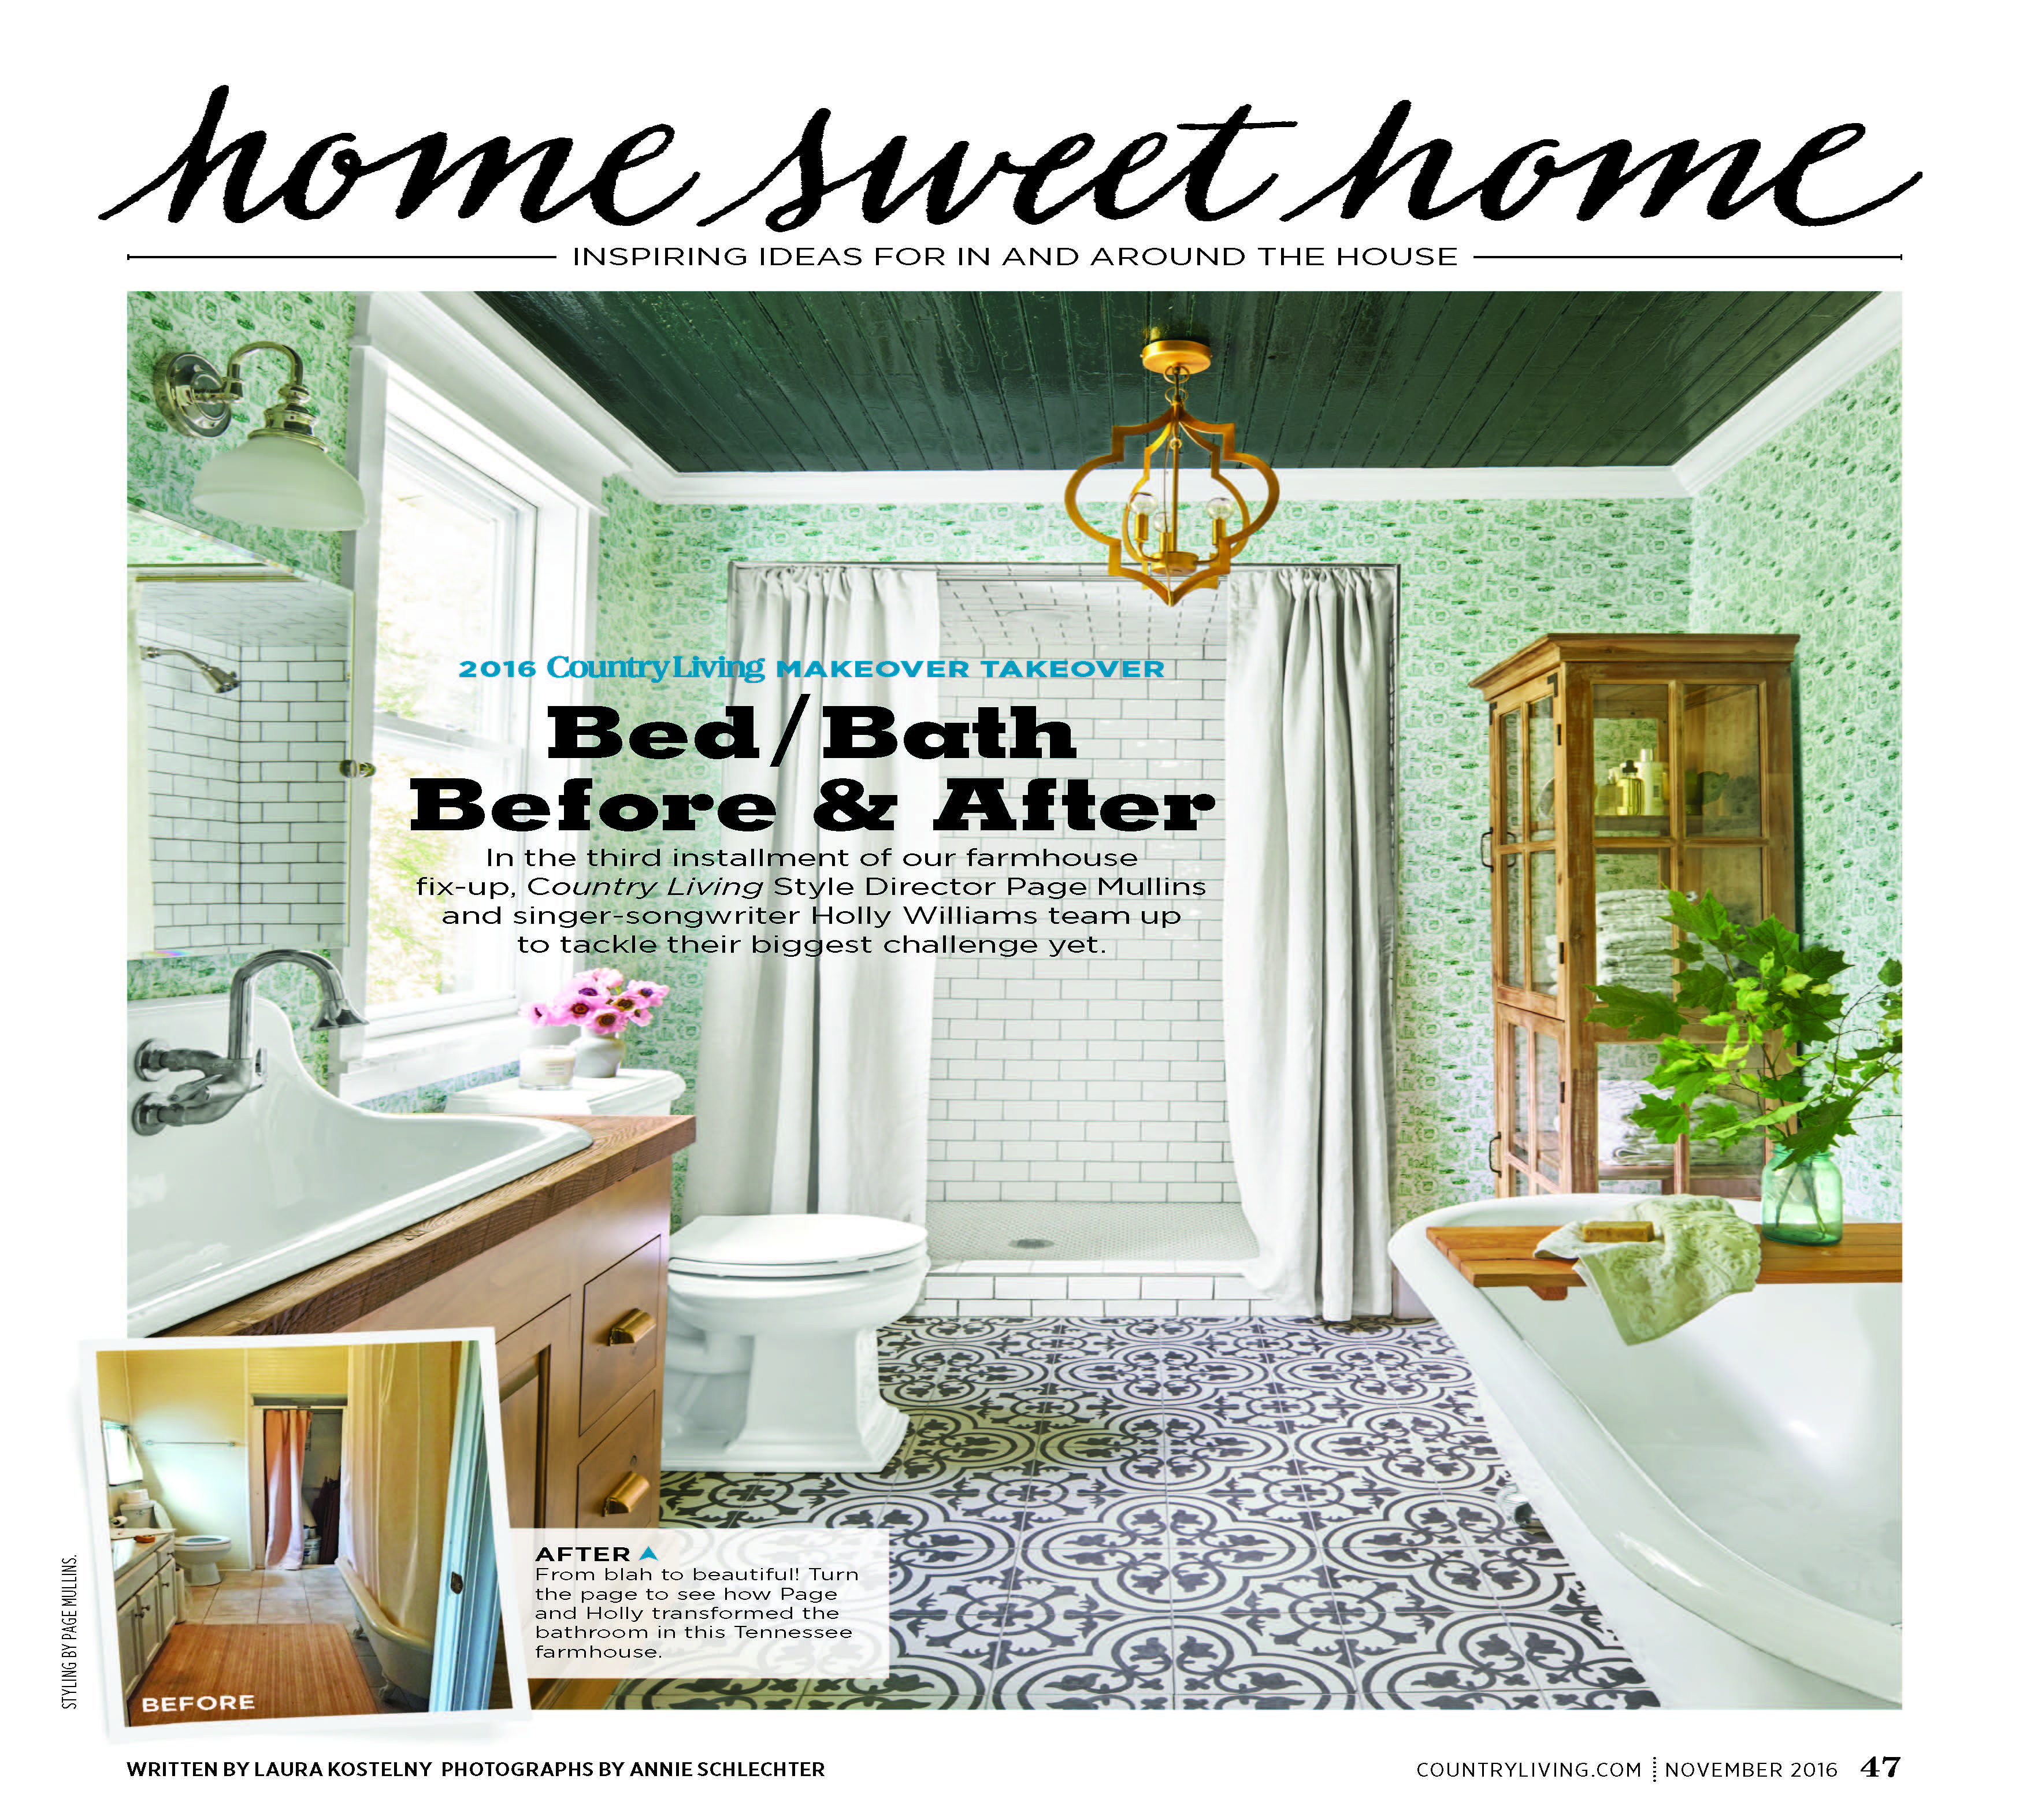 Home Sweet Home: Bed/Bath Before & After